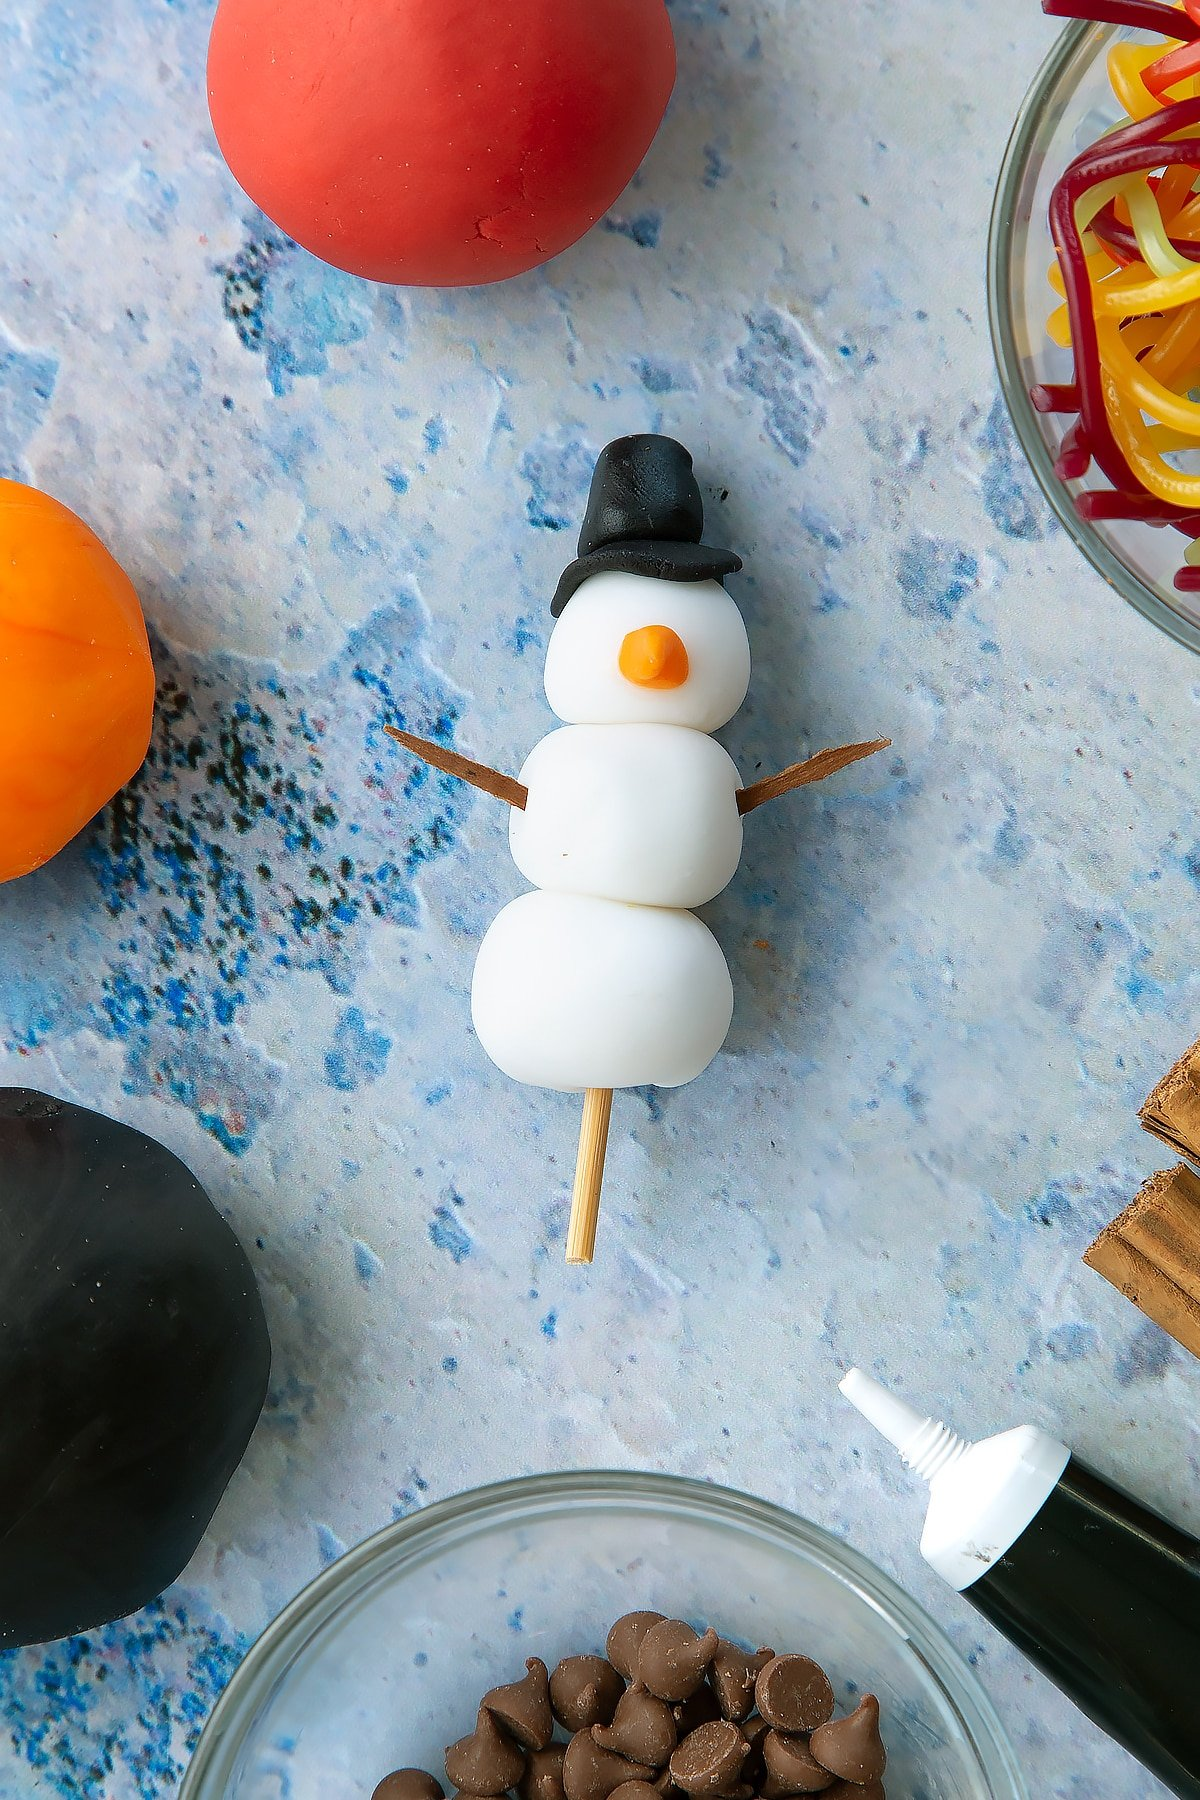 Adding the cinnamon bark to the snowman made of sugar paste. This cinnamon bark is used as arms.